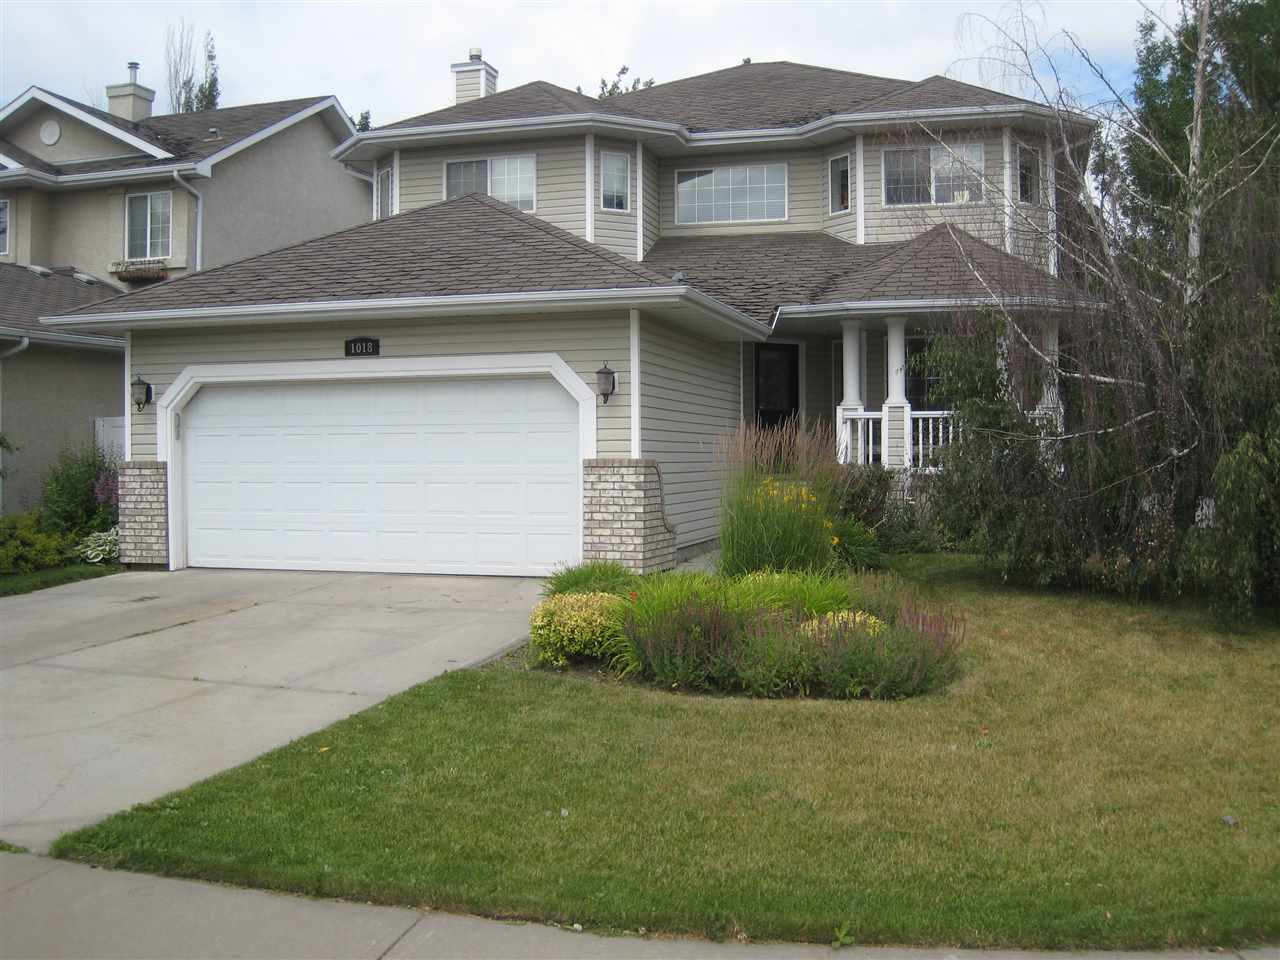 Photo of 1018 Ormsby Crescent NW